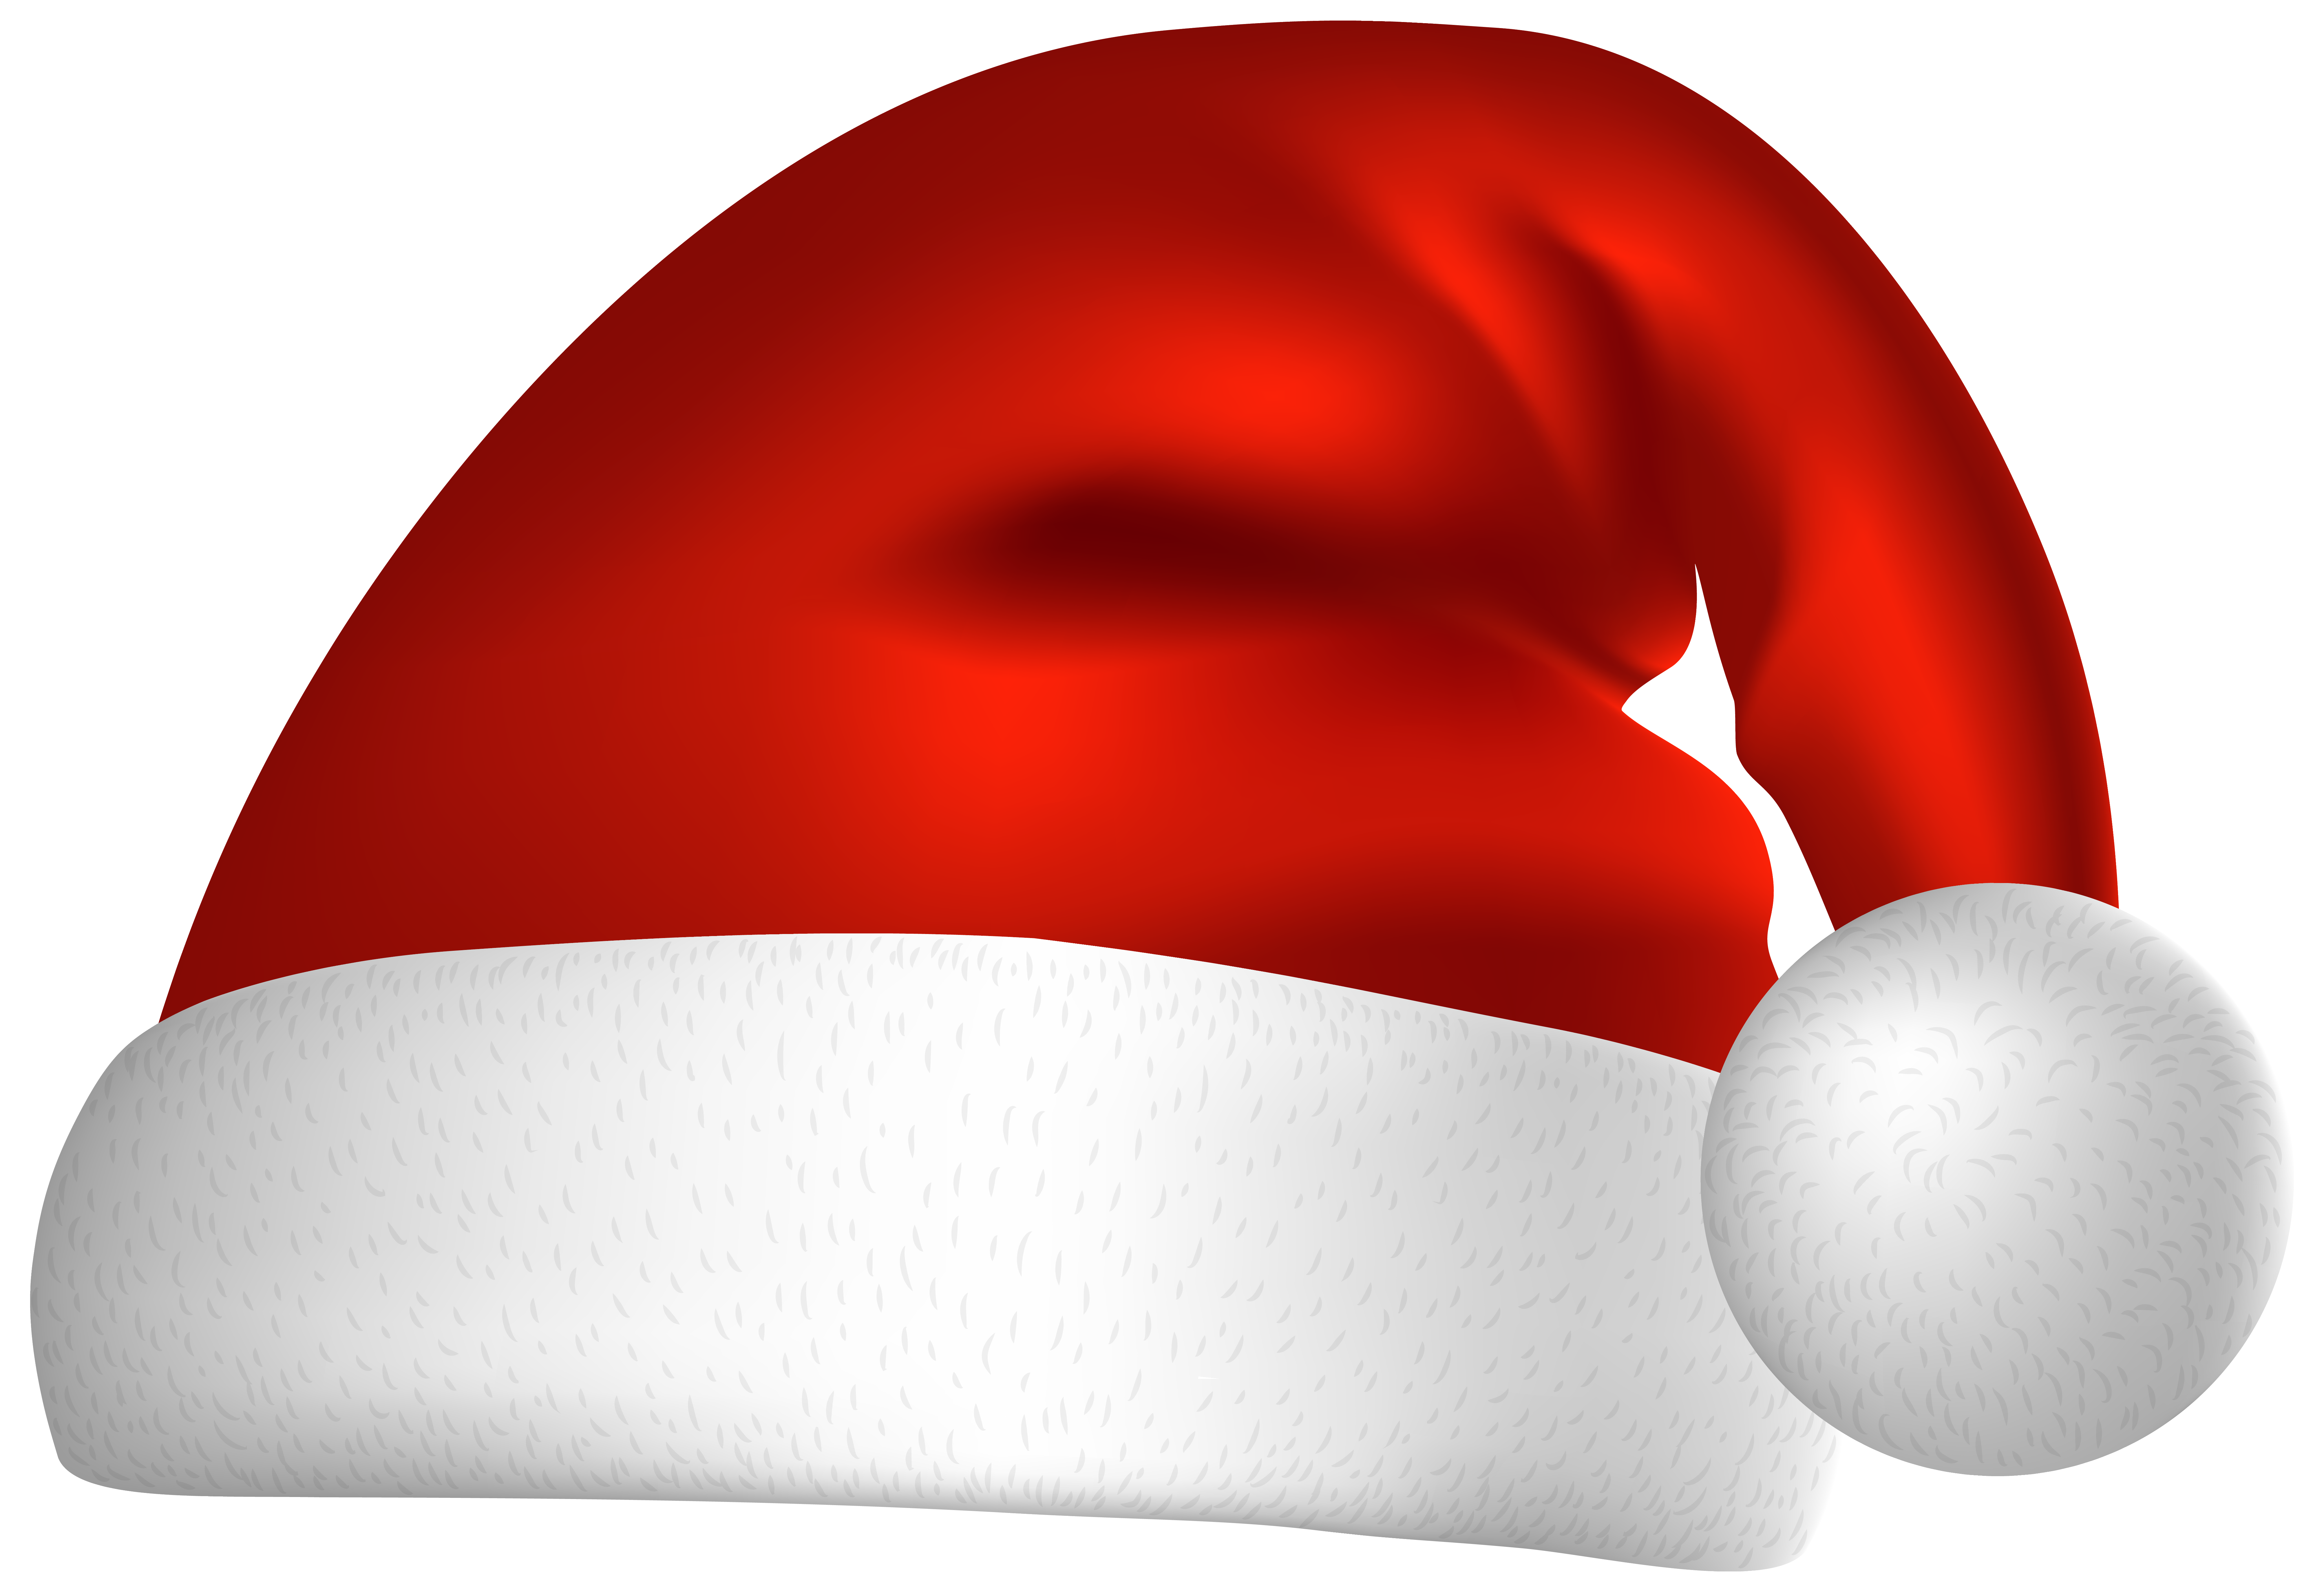 Christmas Santa Hat Png Clip Art Image Gallery Yopriceville High Quality Images And Transparent Png Free Clipart Santa Claus Hat Art Images Clip Art